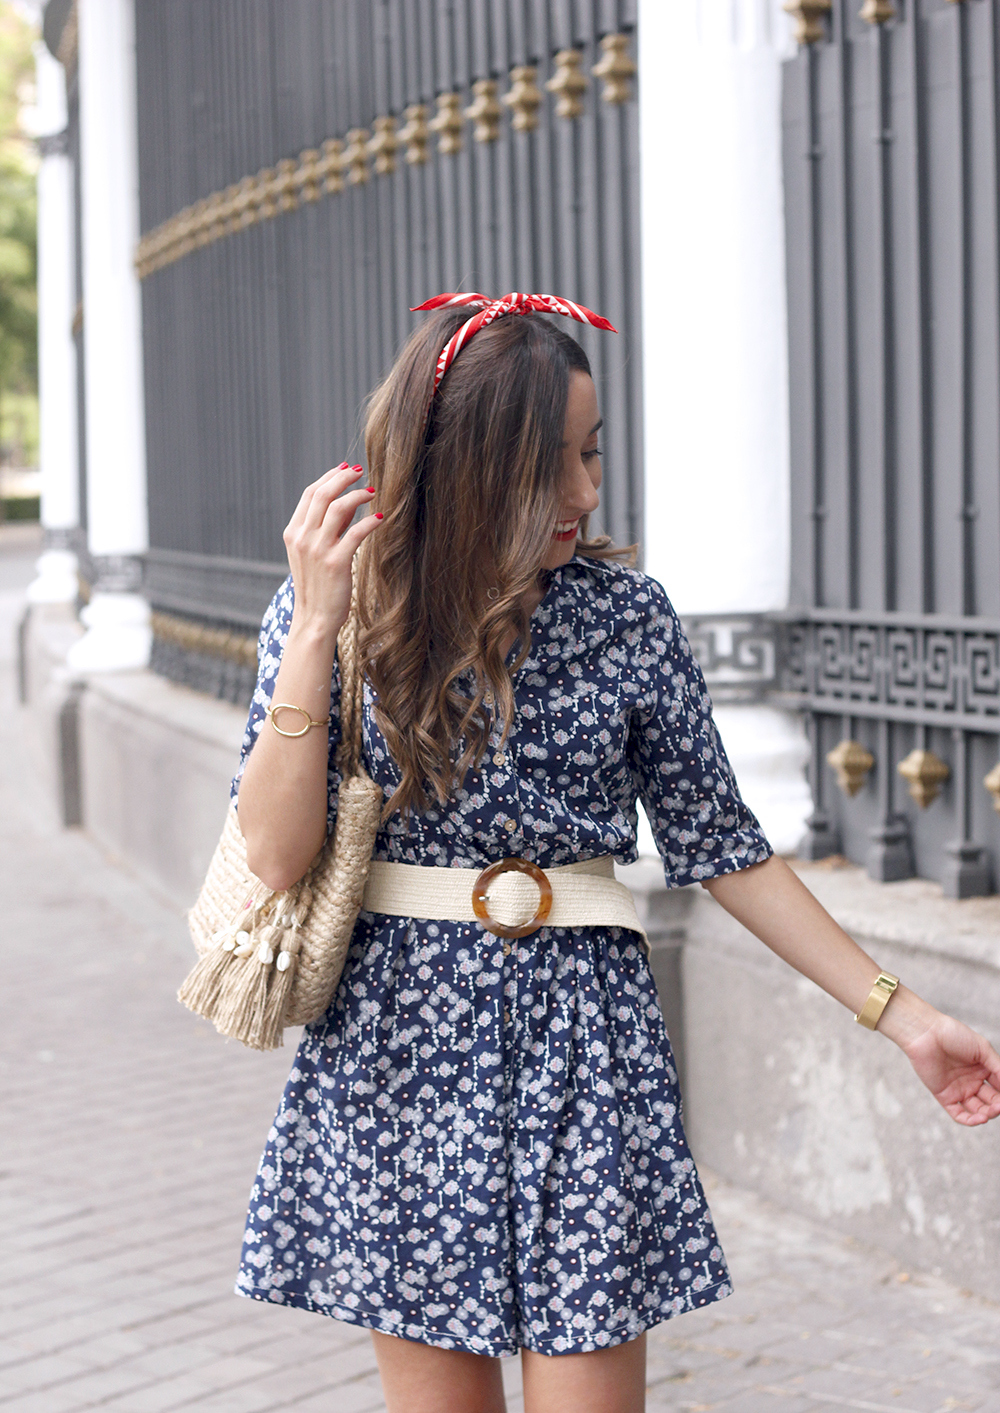 casual printed dress platfrom converse hair scarf street style outfit 20191